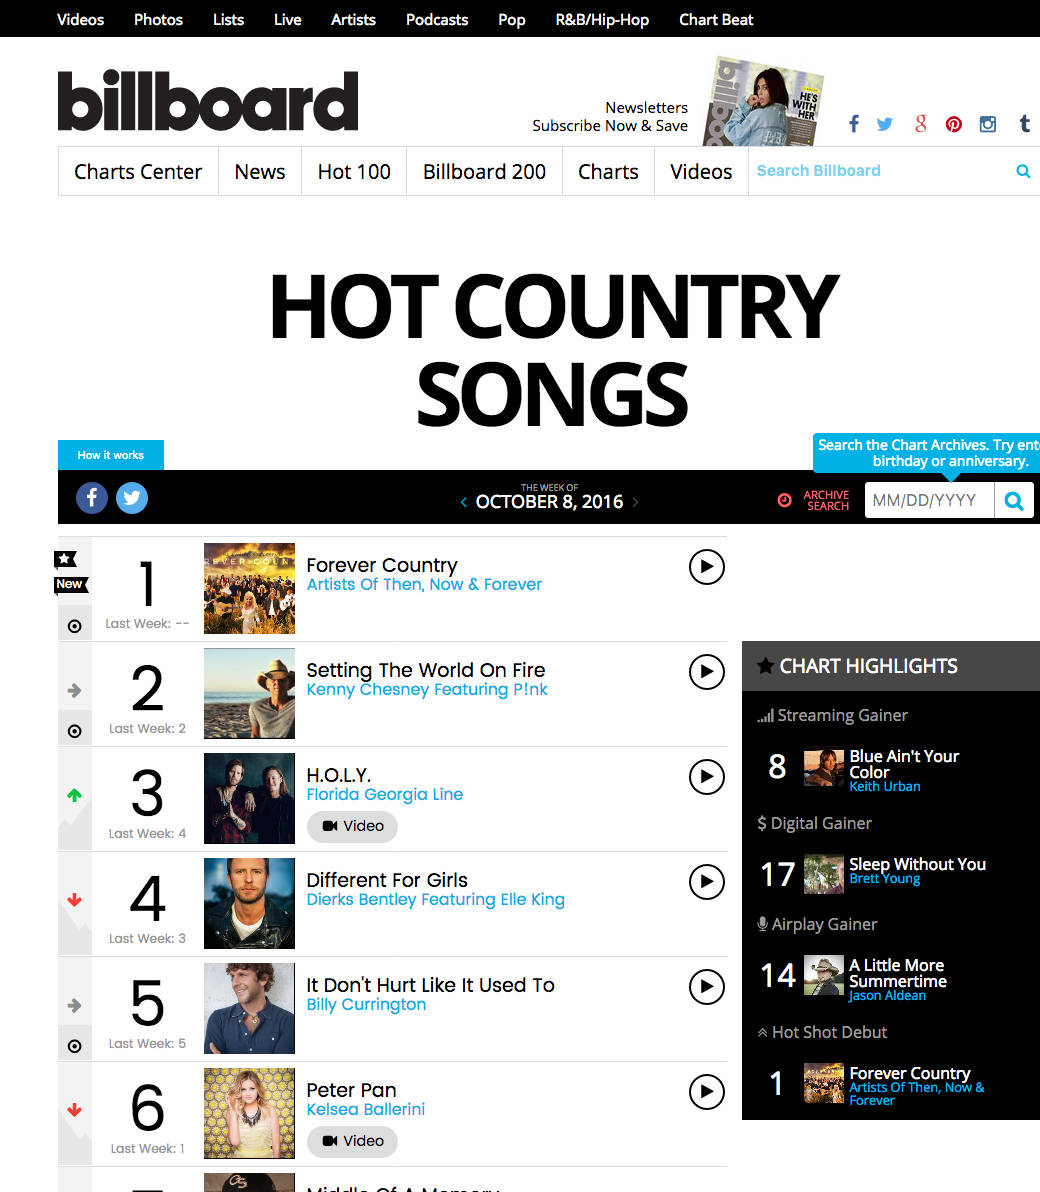 Billboard Charts - Hot Country Songs